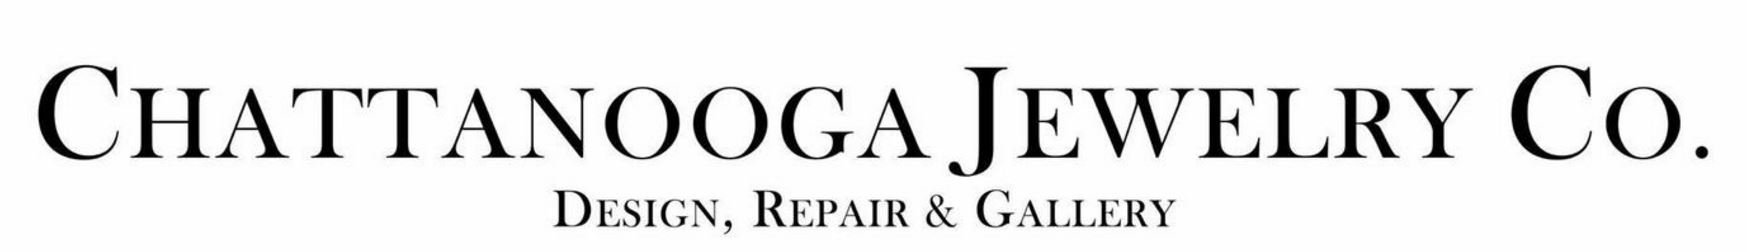 Chattanooga Jewelry Co - Logo